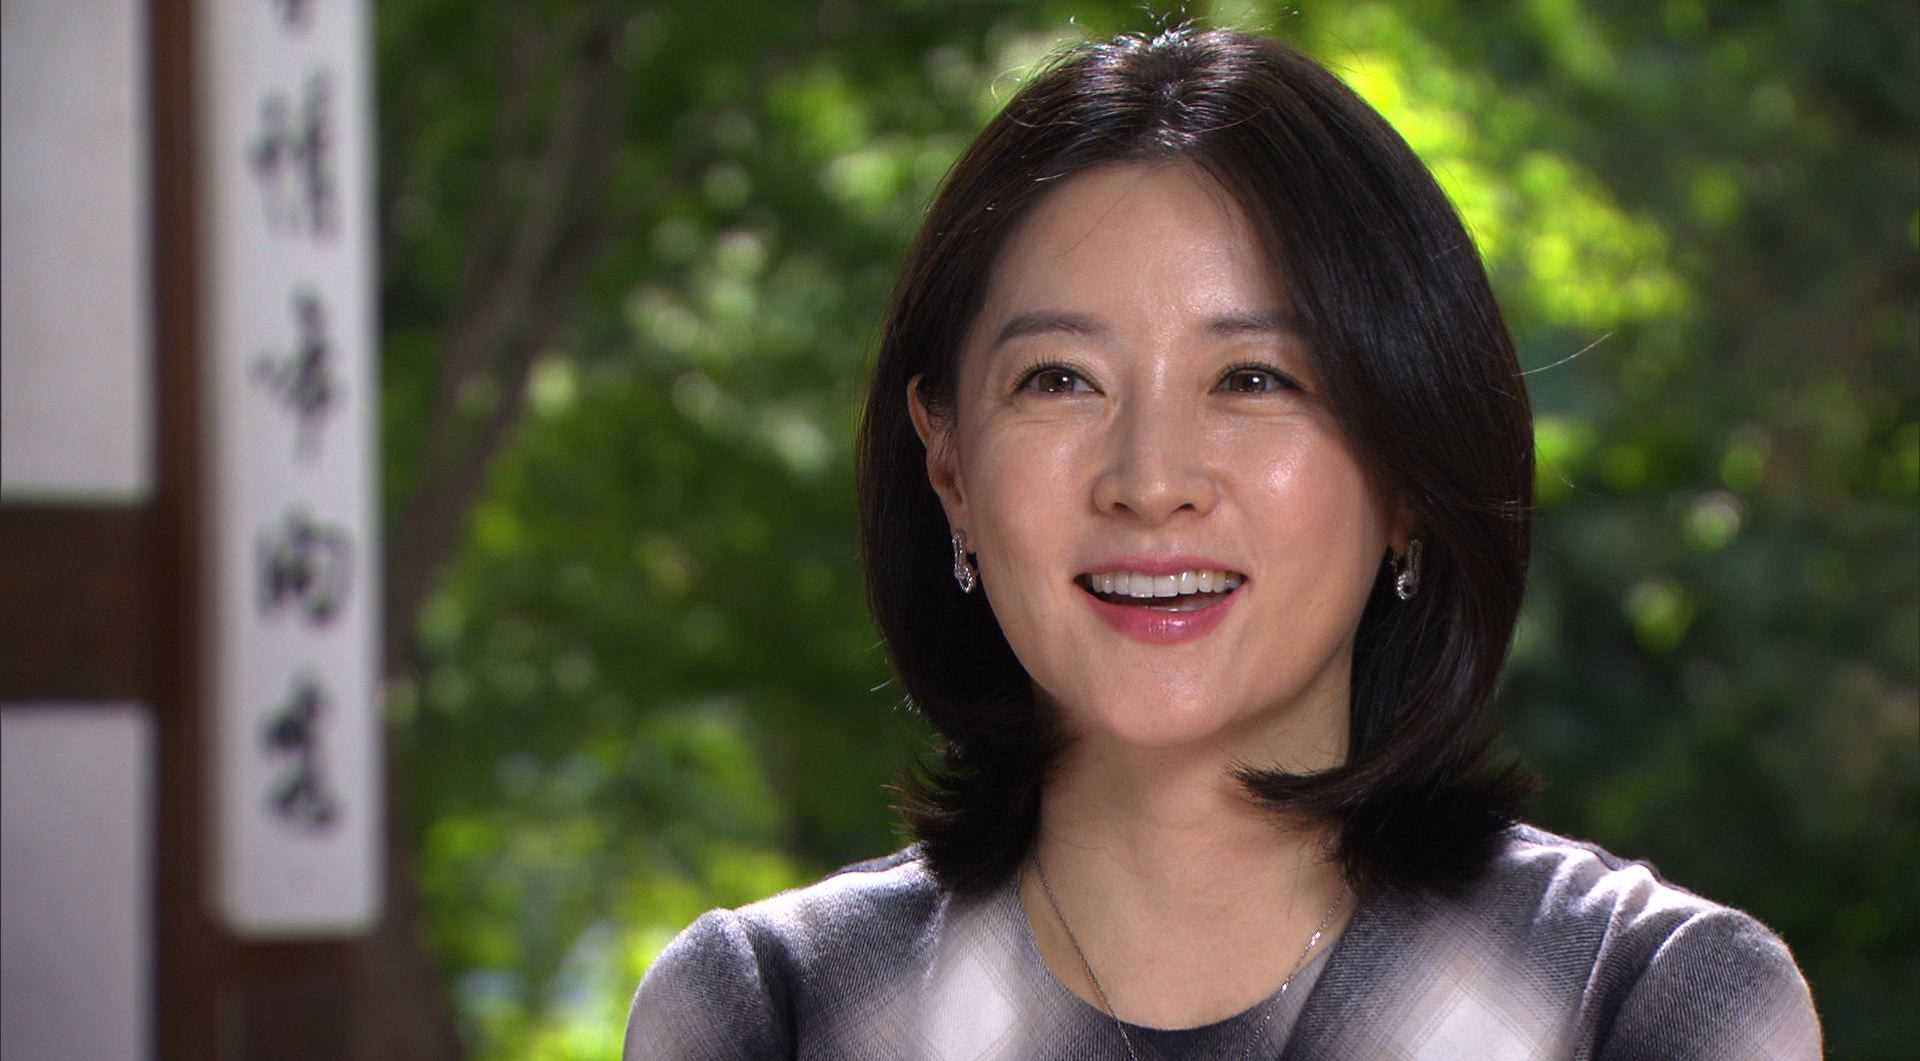 Lee Young Ae Releases Ad to Stop Rampant Illegal Use of Her Image